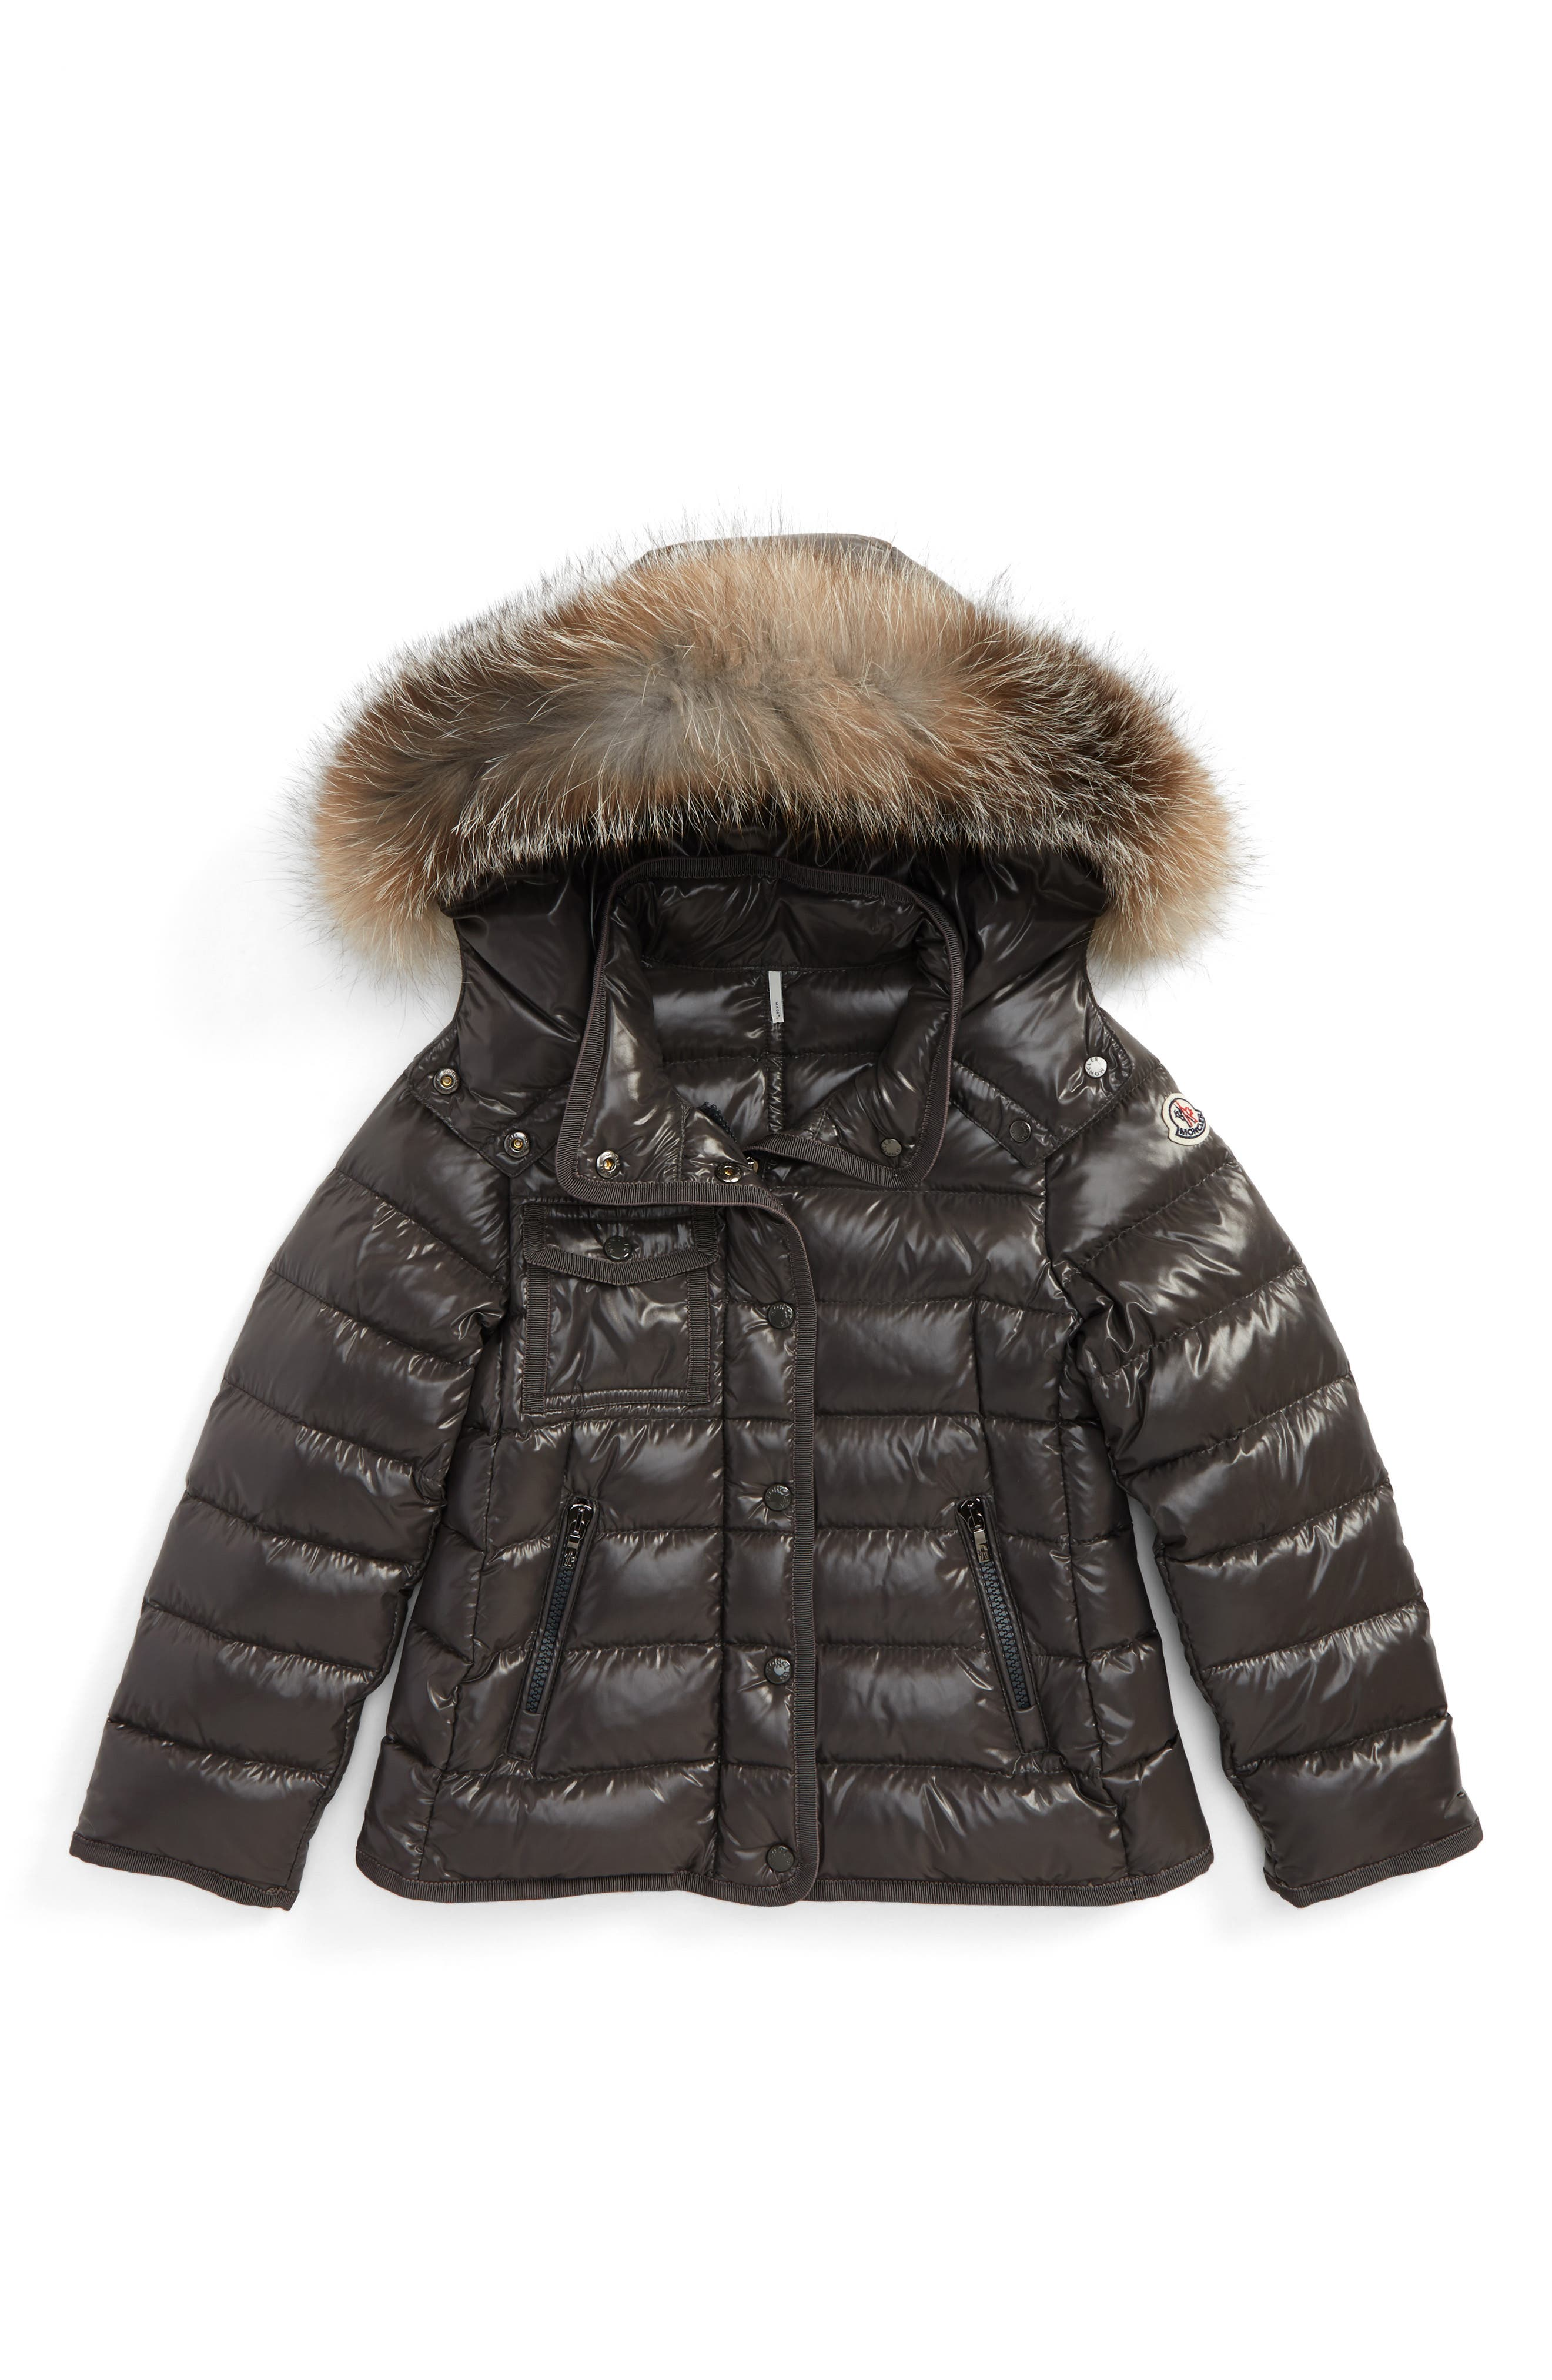 Armoise Hooded Jacket with Genuine Fox Fur Trim,                             Main thumbnail 1, color,                             020